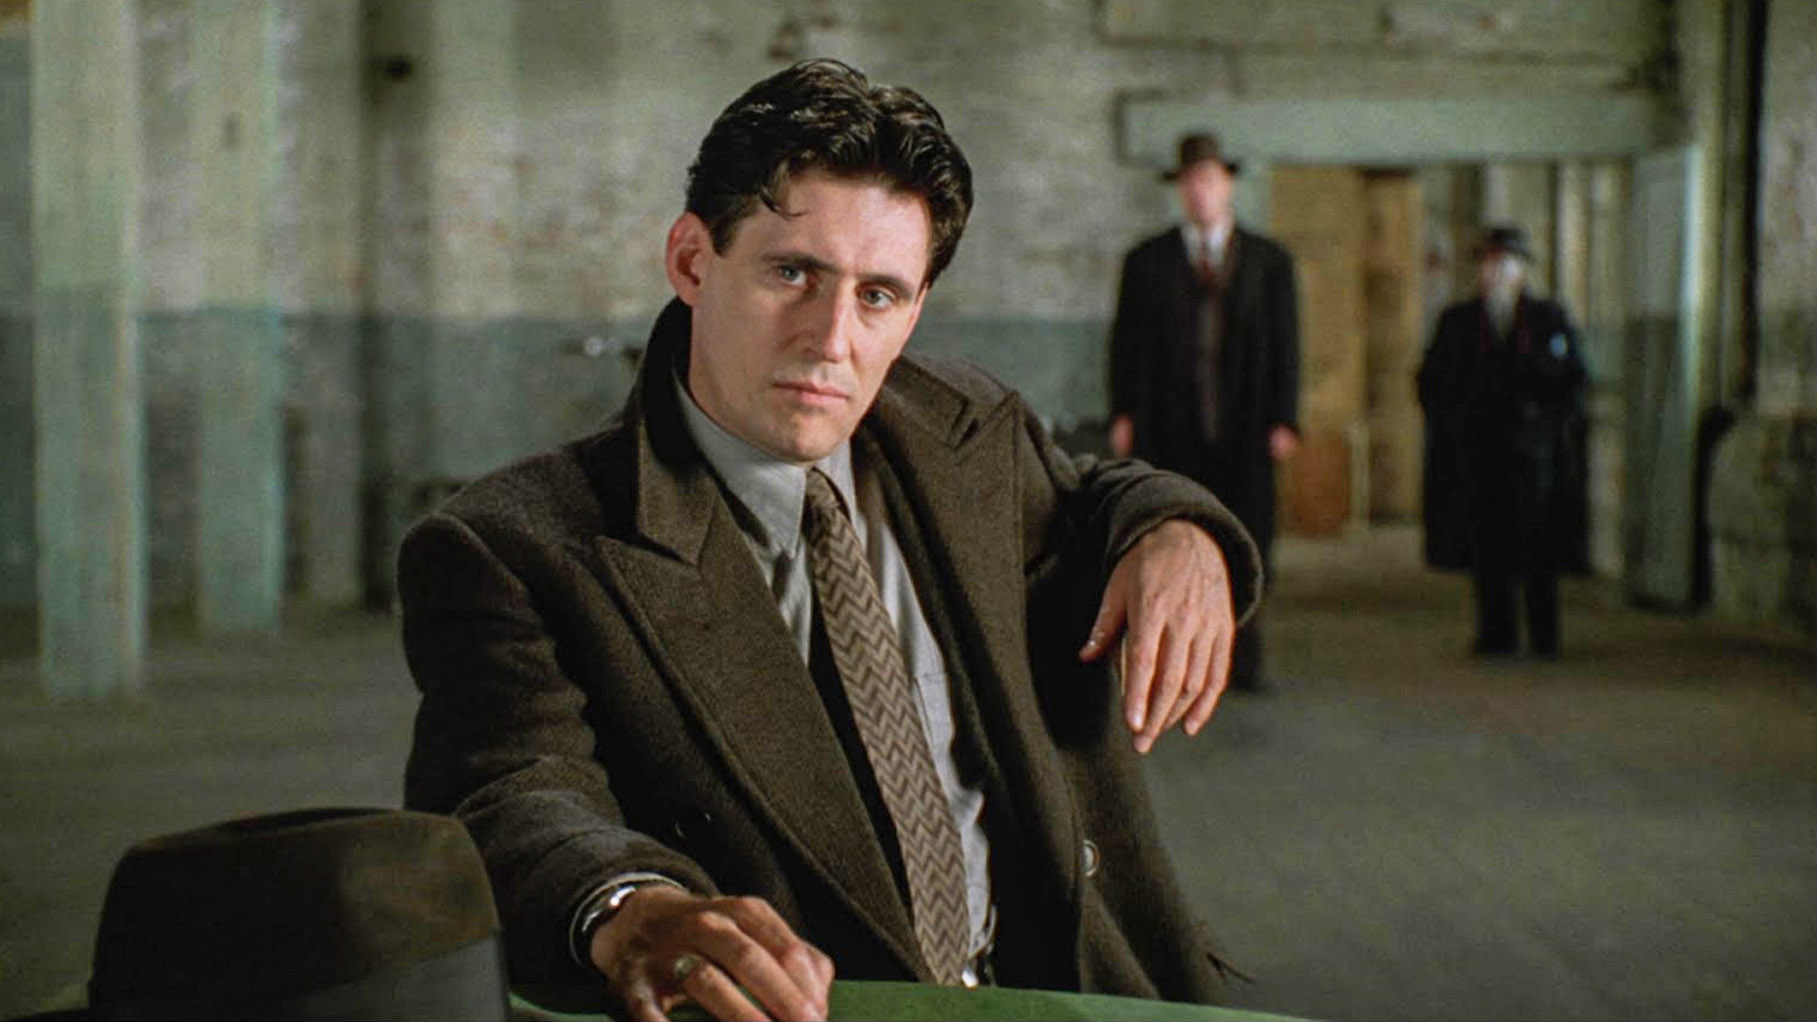 millers_crossing_gabriel_byrne copy.jpg